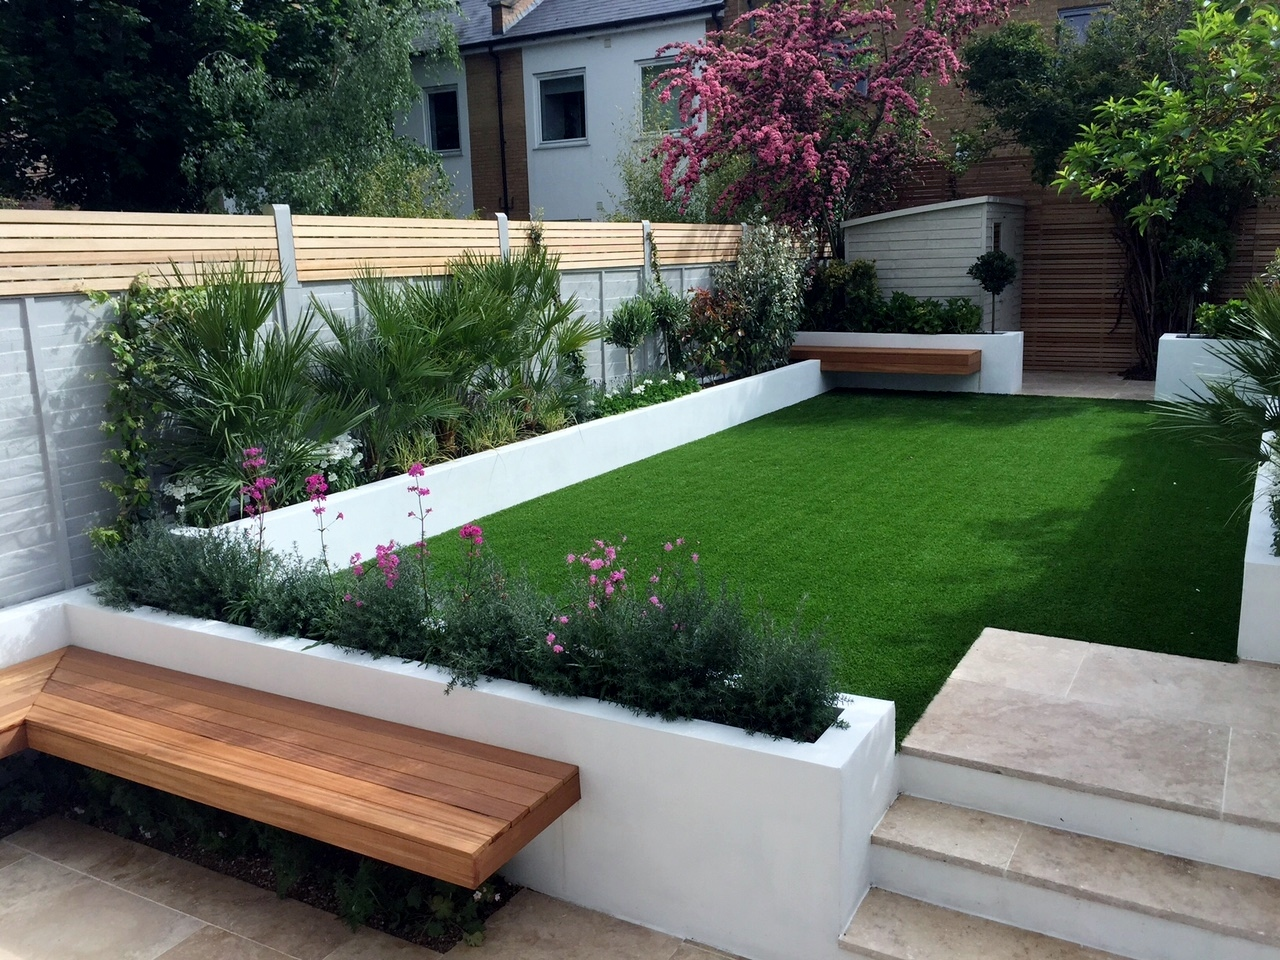 Modern garden design ideas Fulham Chelsea Battersea ... on Backyard Patio Layout id=16958